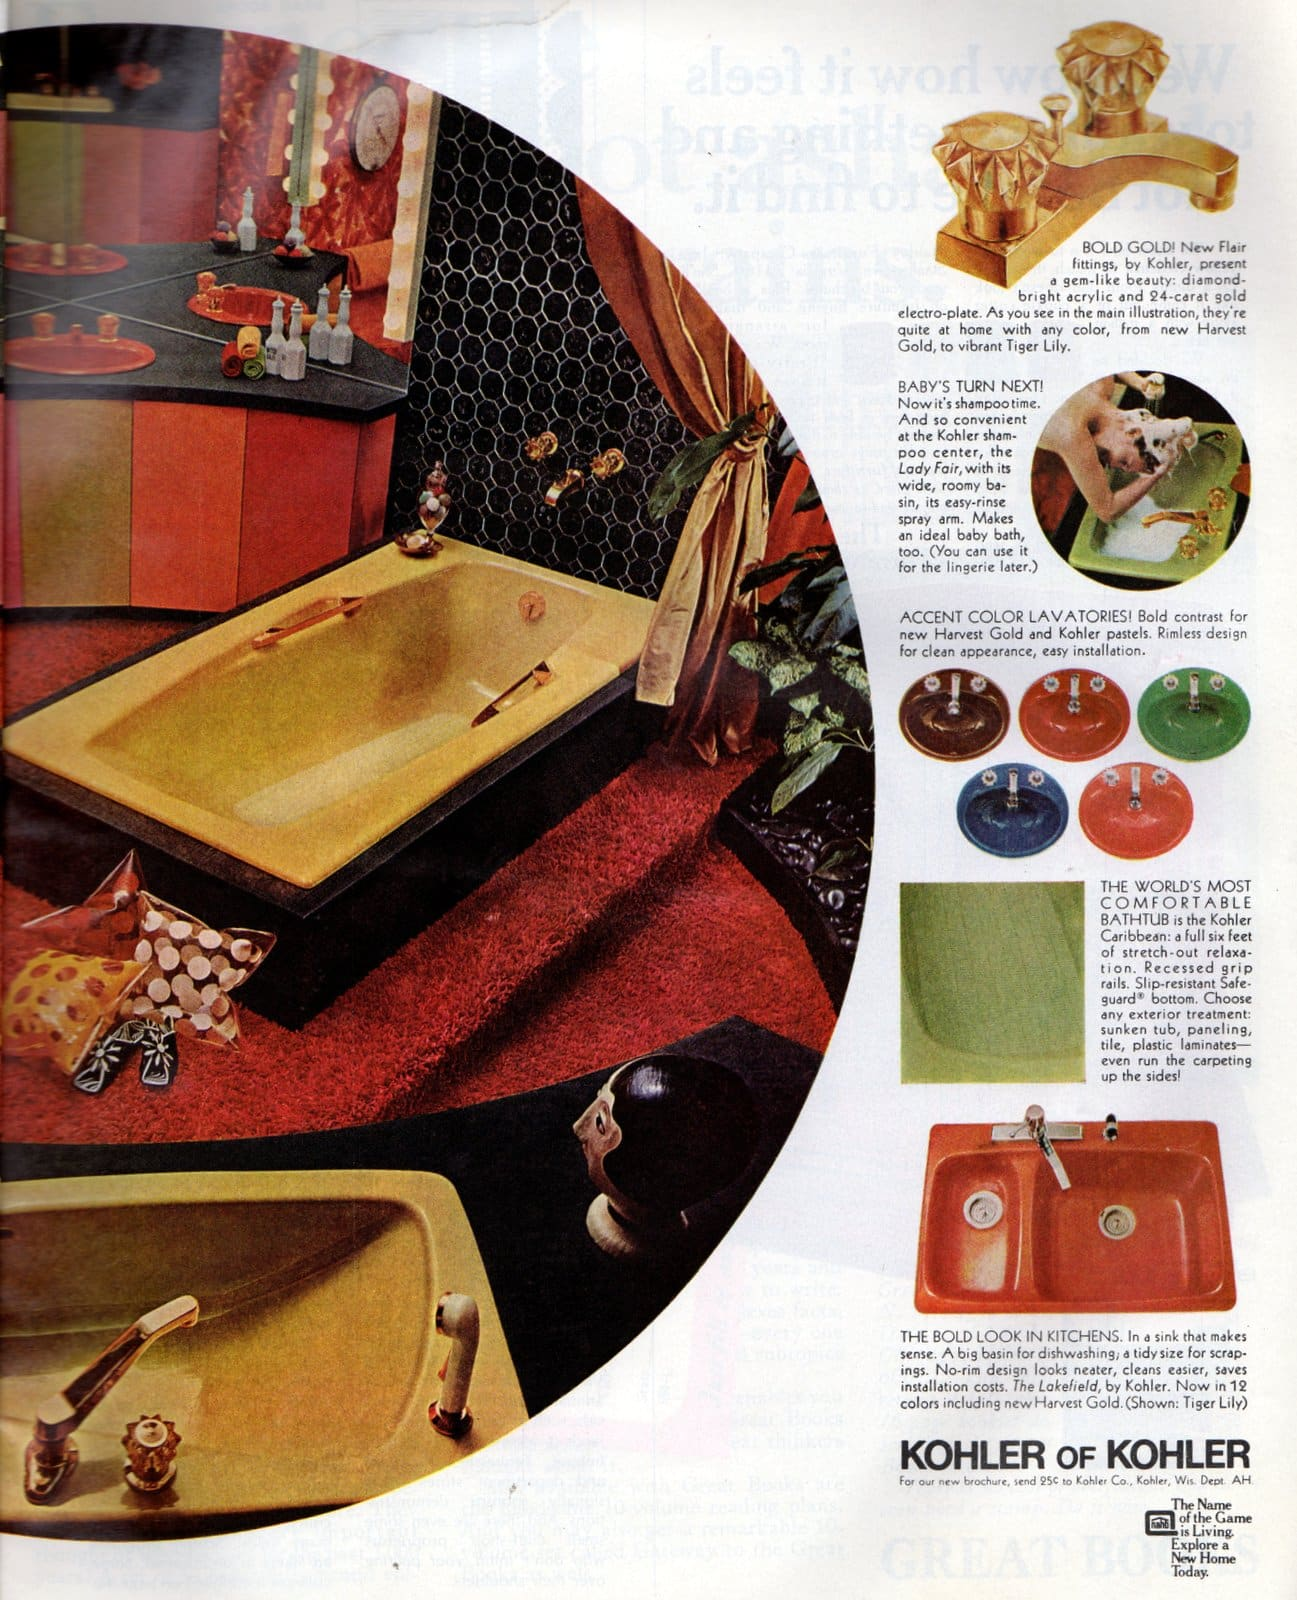 Retro sixties Harvest Gold Kohler bathroom suites from 1968 (2)